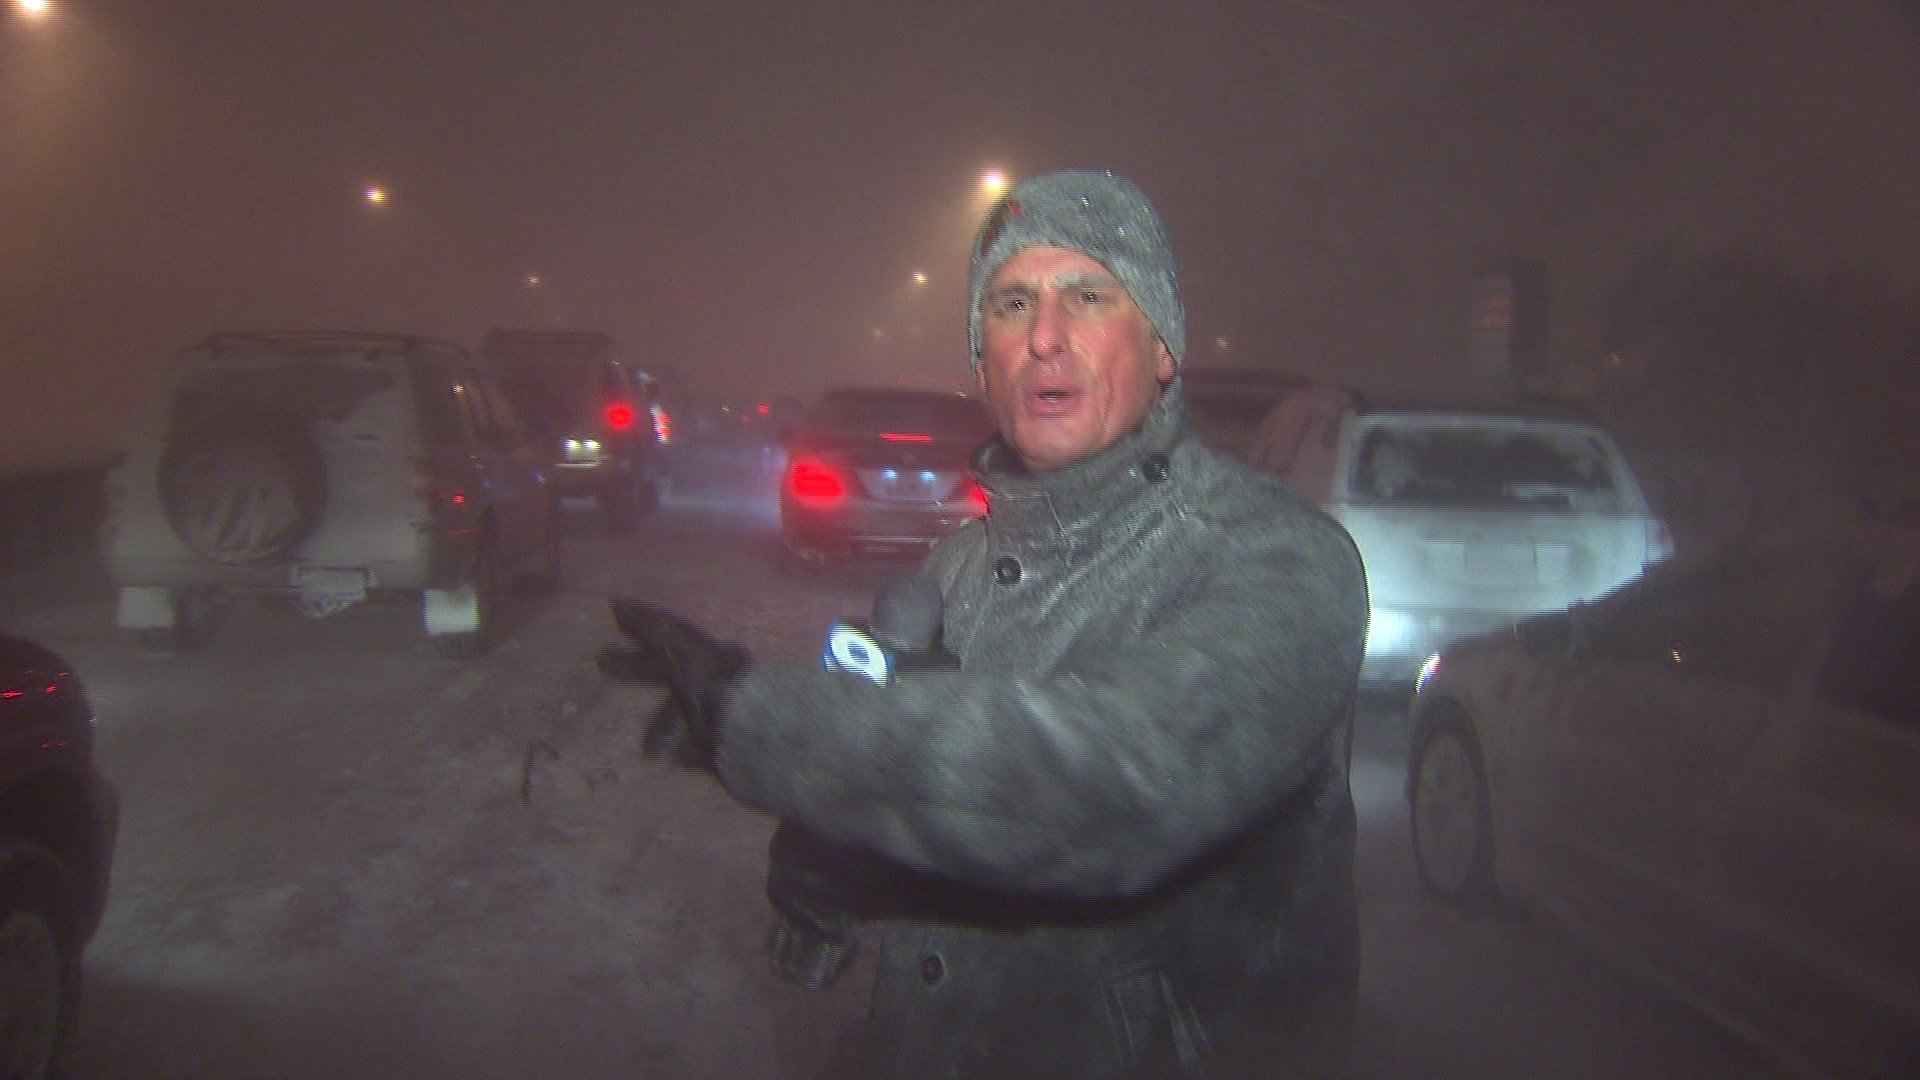 WGN's Tom Negovan reports during the Blizzard of 2011.